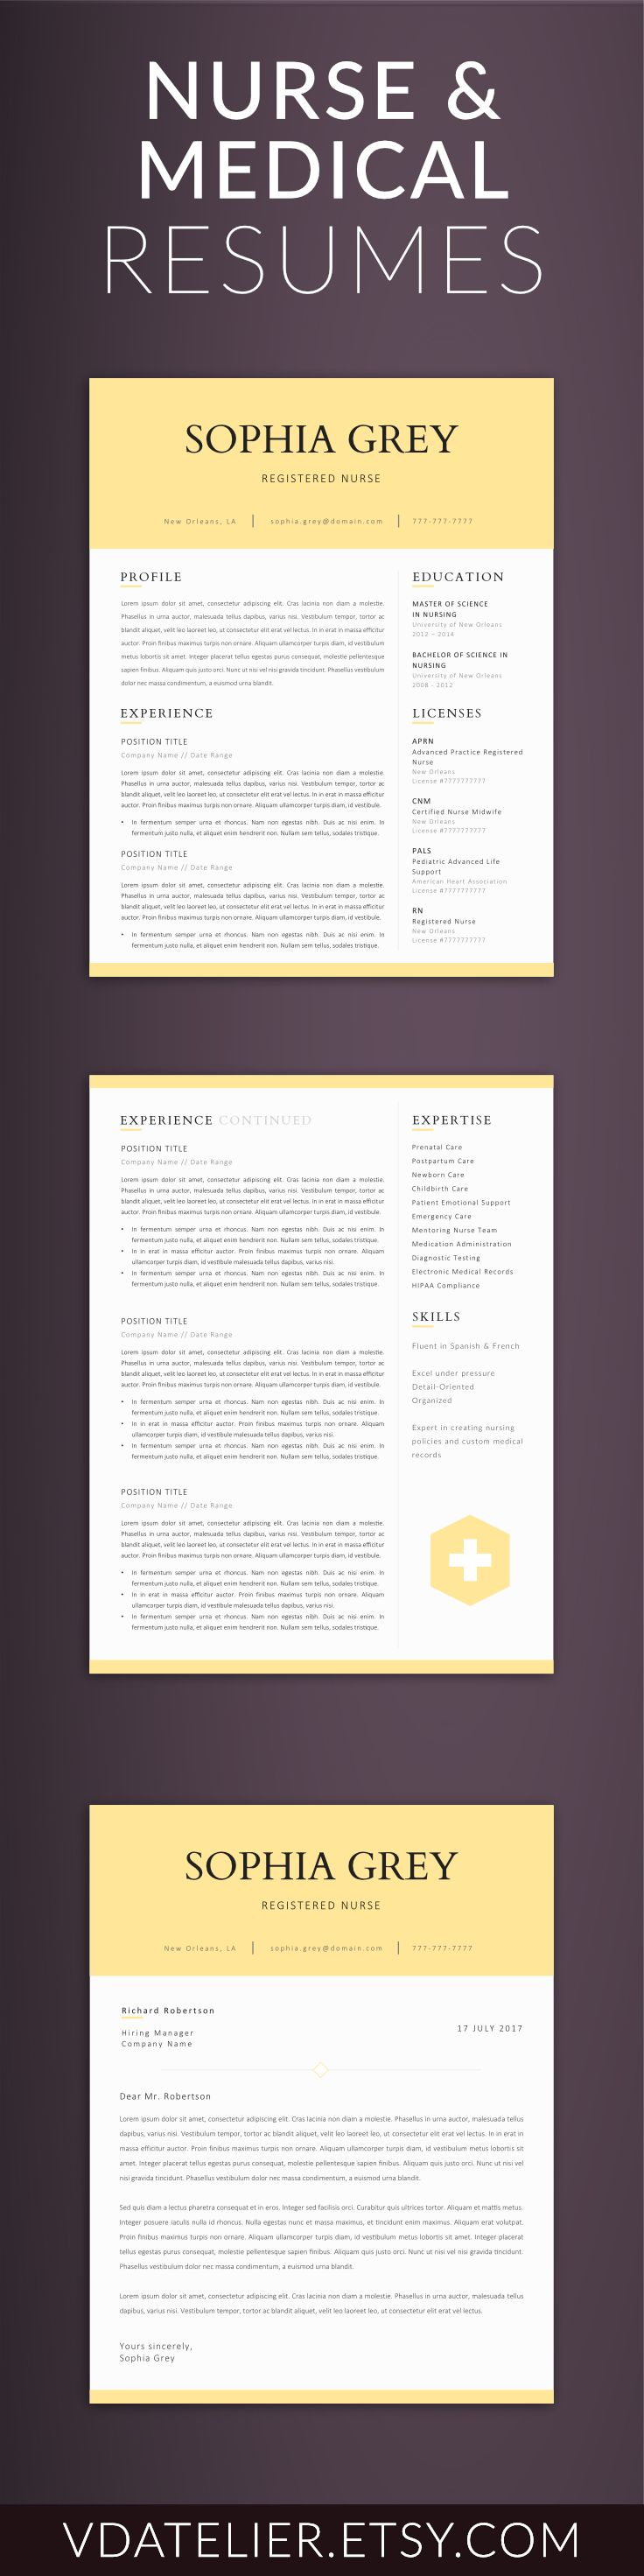 nursing resume template 5 pages nurse cv template registered nurse resume template rn resume medical resume cna resume